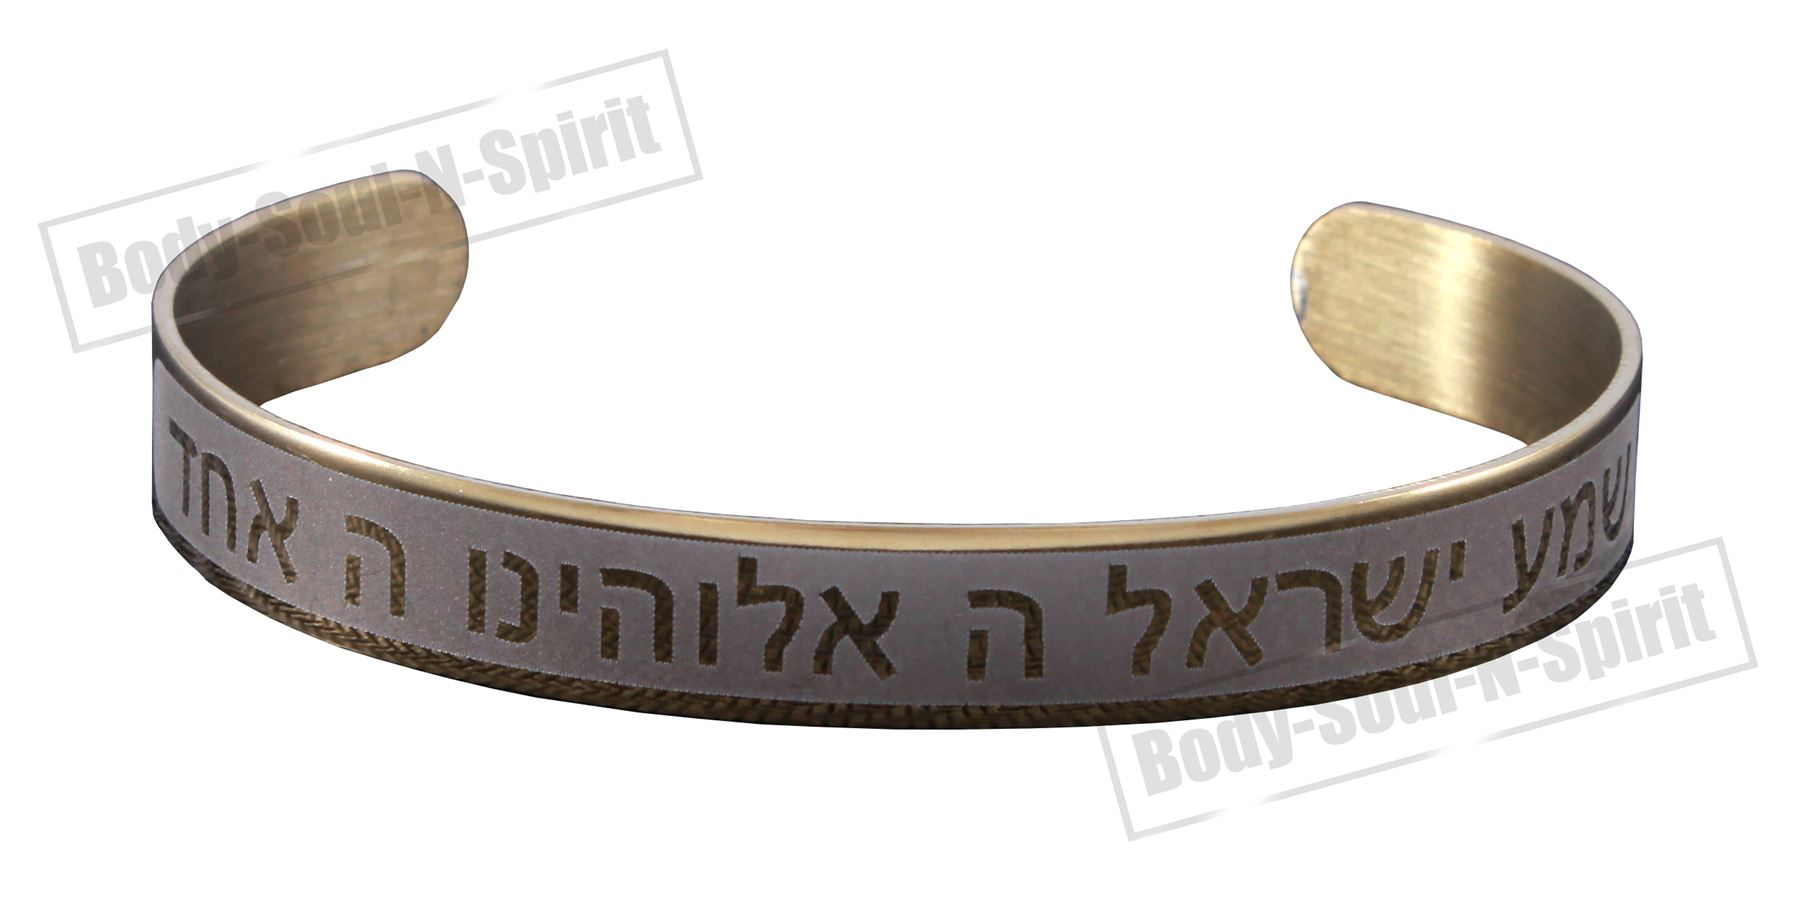 Shema israel bracelet israel bible jewish hebrew prayer kabbalah shma - The Shema Israel Prayer Is Considered By Observant Jews To Be The Most Important Prayer In Judaism